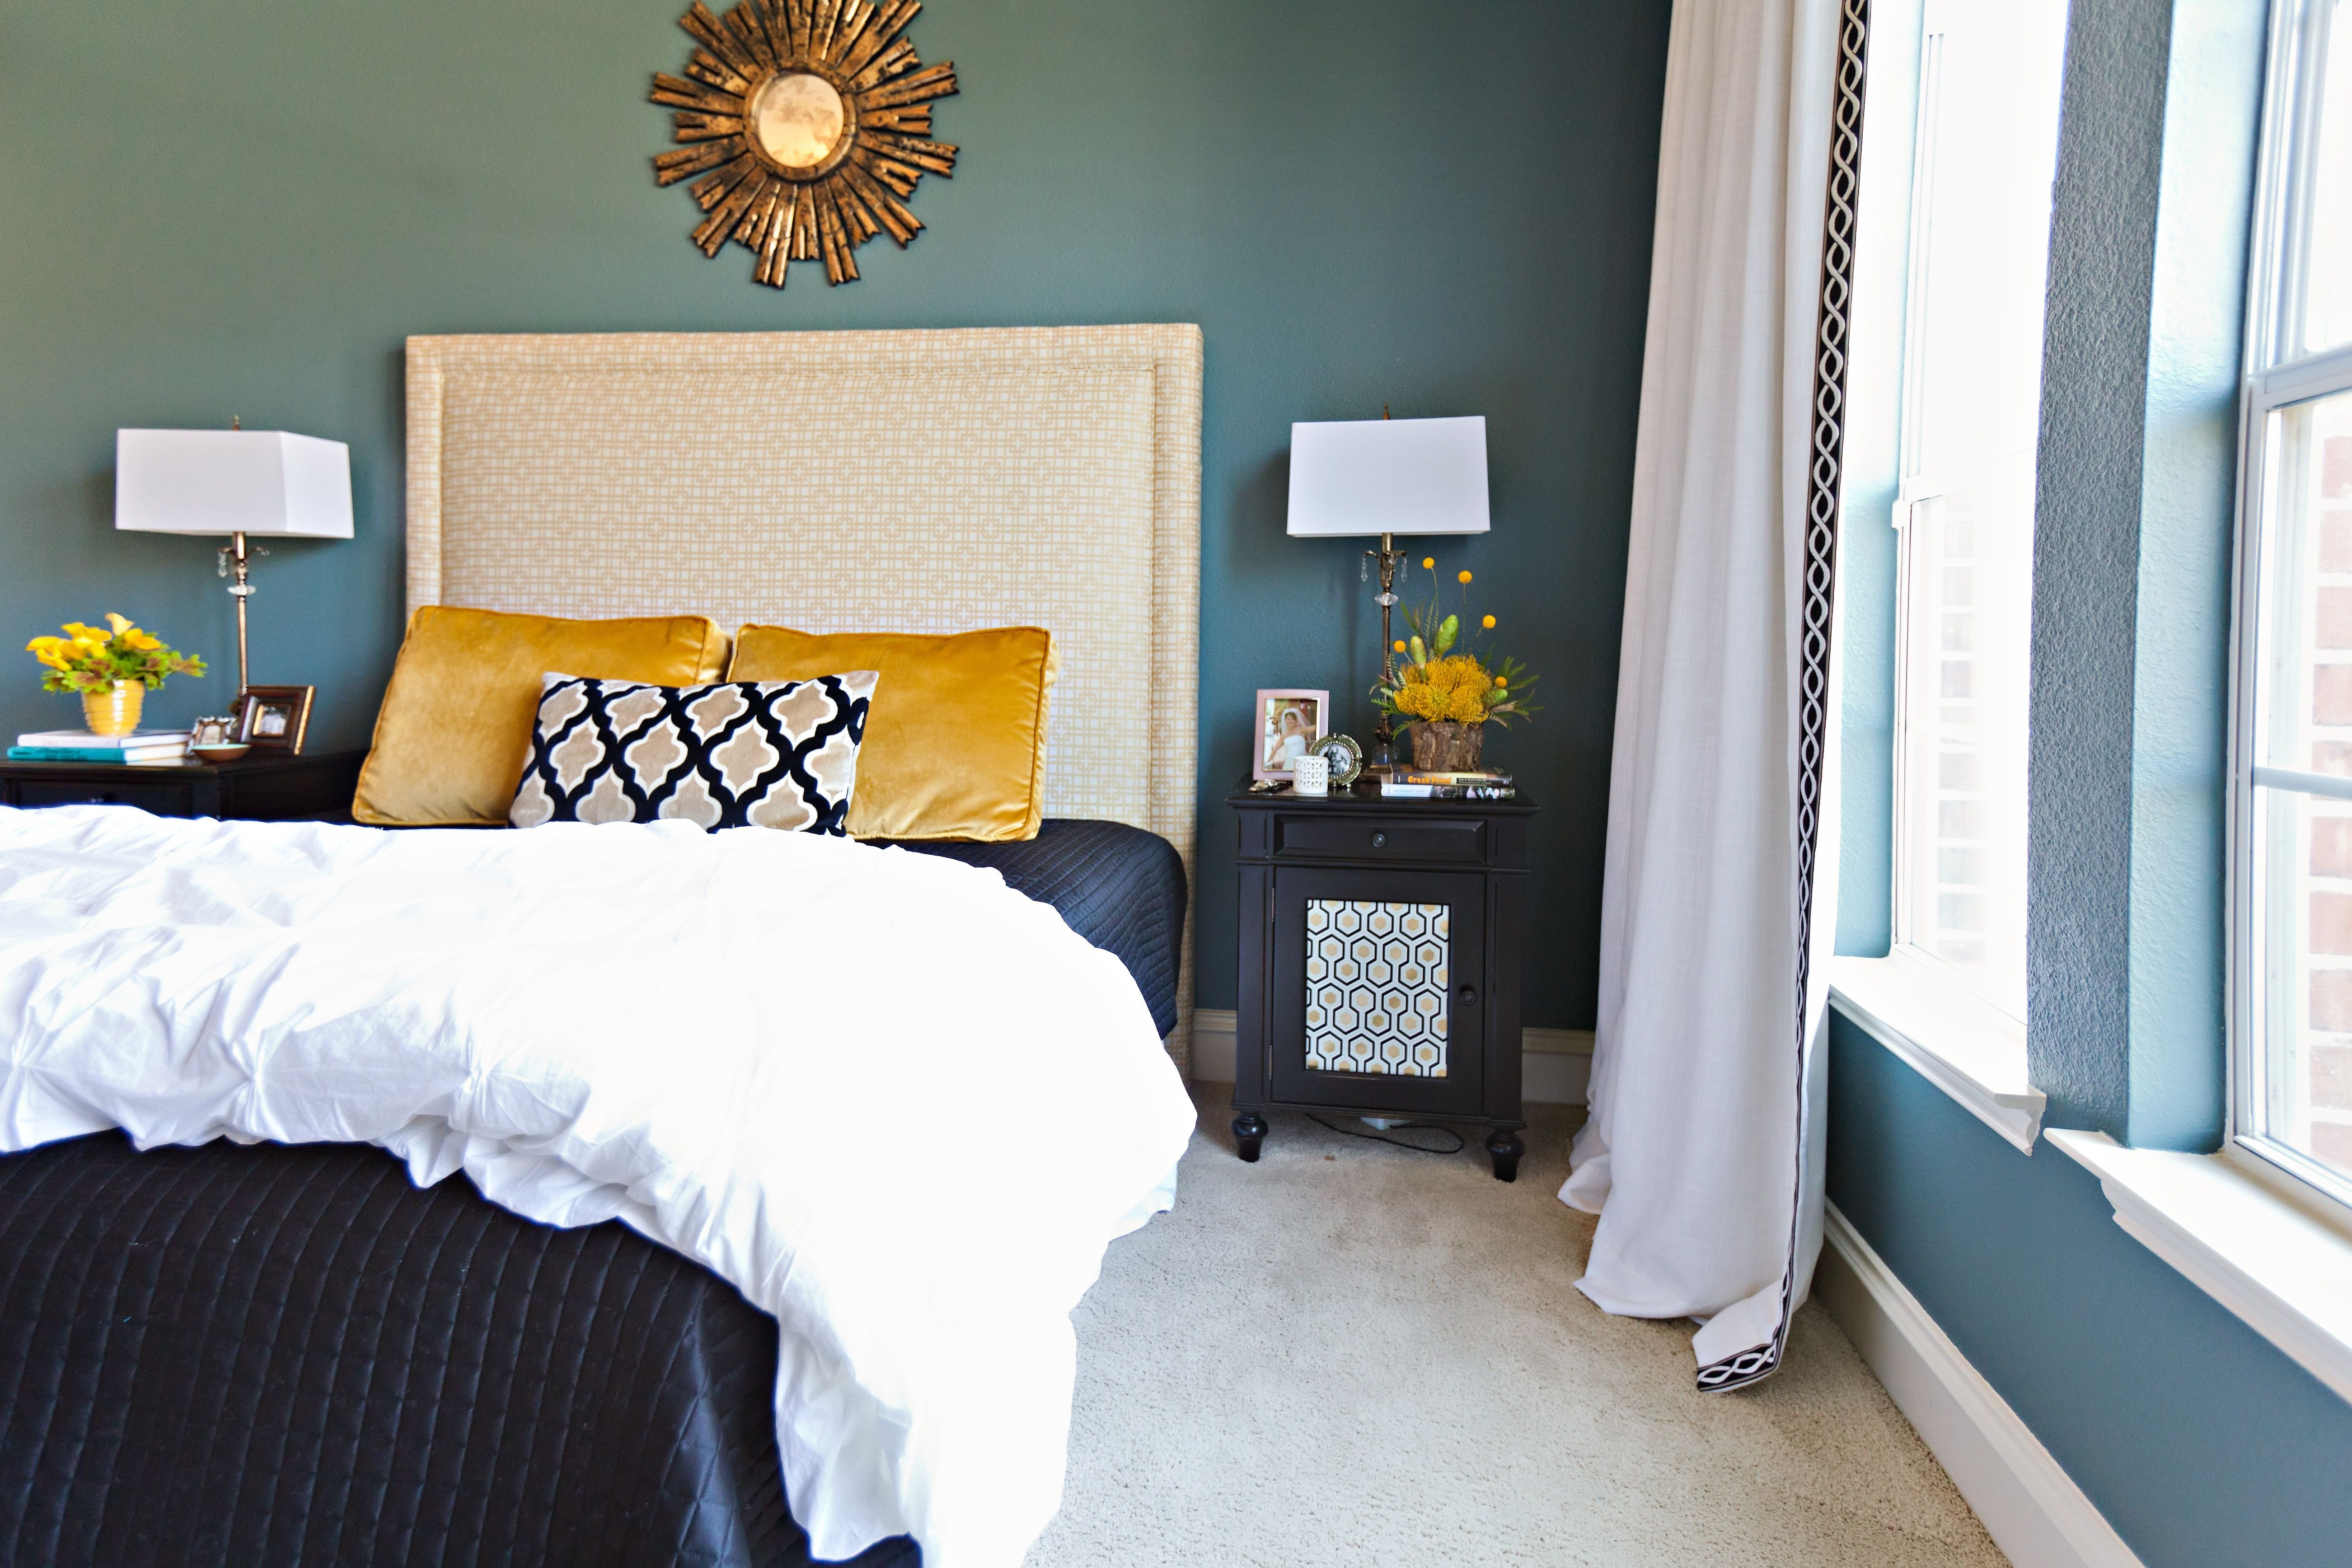 Shades Of Blue for Bedroom Lovely Turquoise Blue Yellow Tan with White Love these Colors